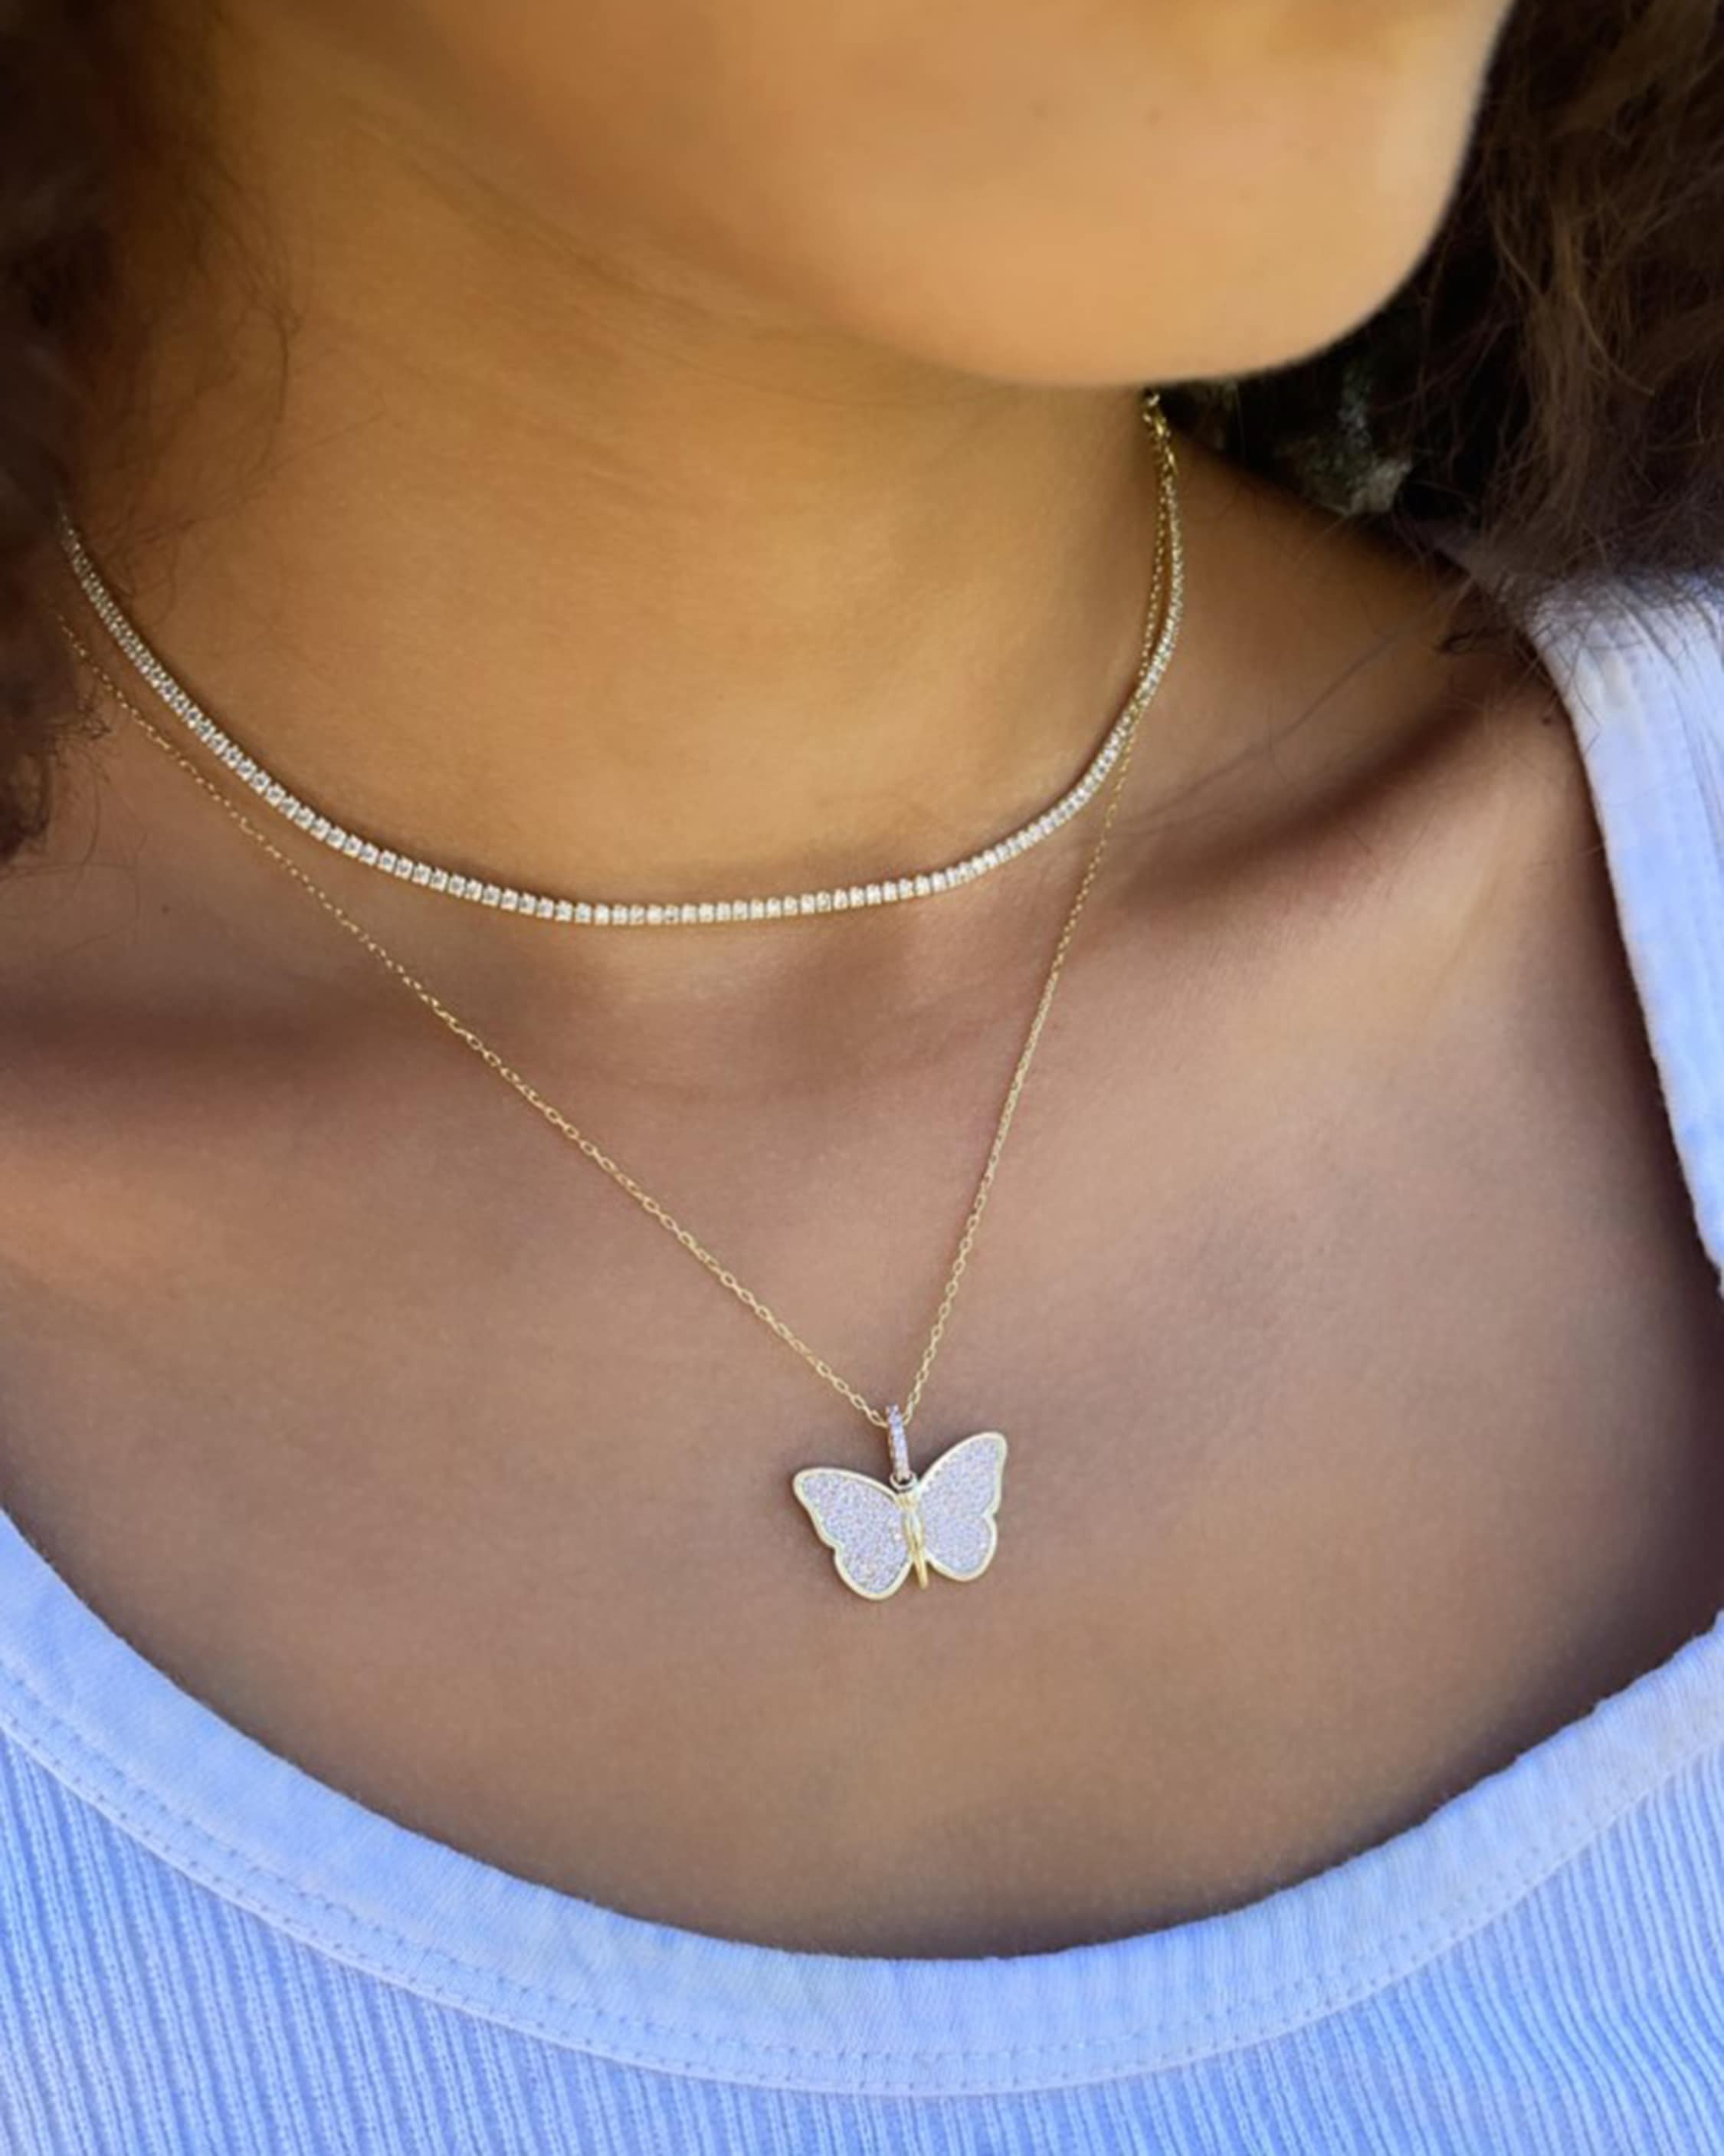 SHYMI Exclusive Butterfly Necklace & Tennis Choker Set 2